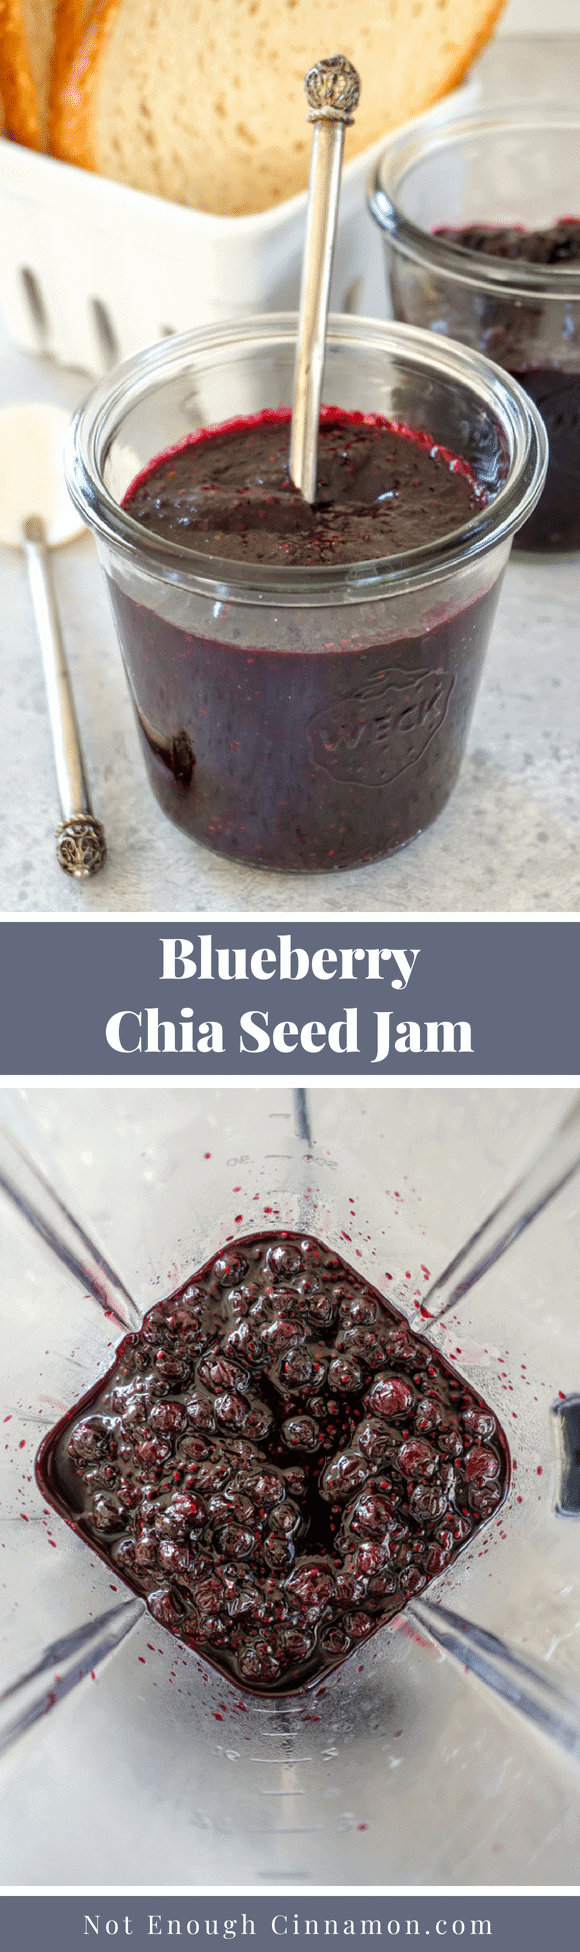 A low-sugar easy jam recipe made with chia seeds. Paleo, Vegan, Gluten Free and Refined Sugar Free. Recipe on NotEnoughCinnamon.com